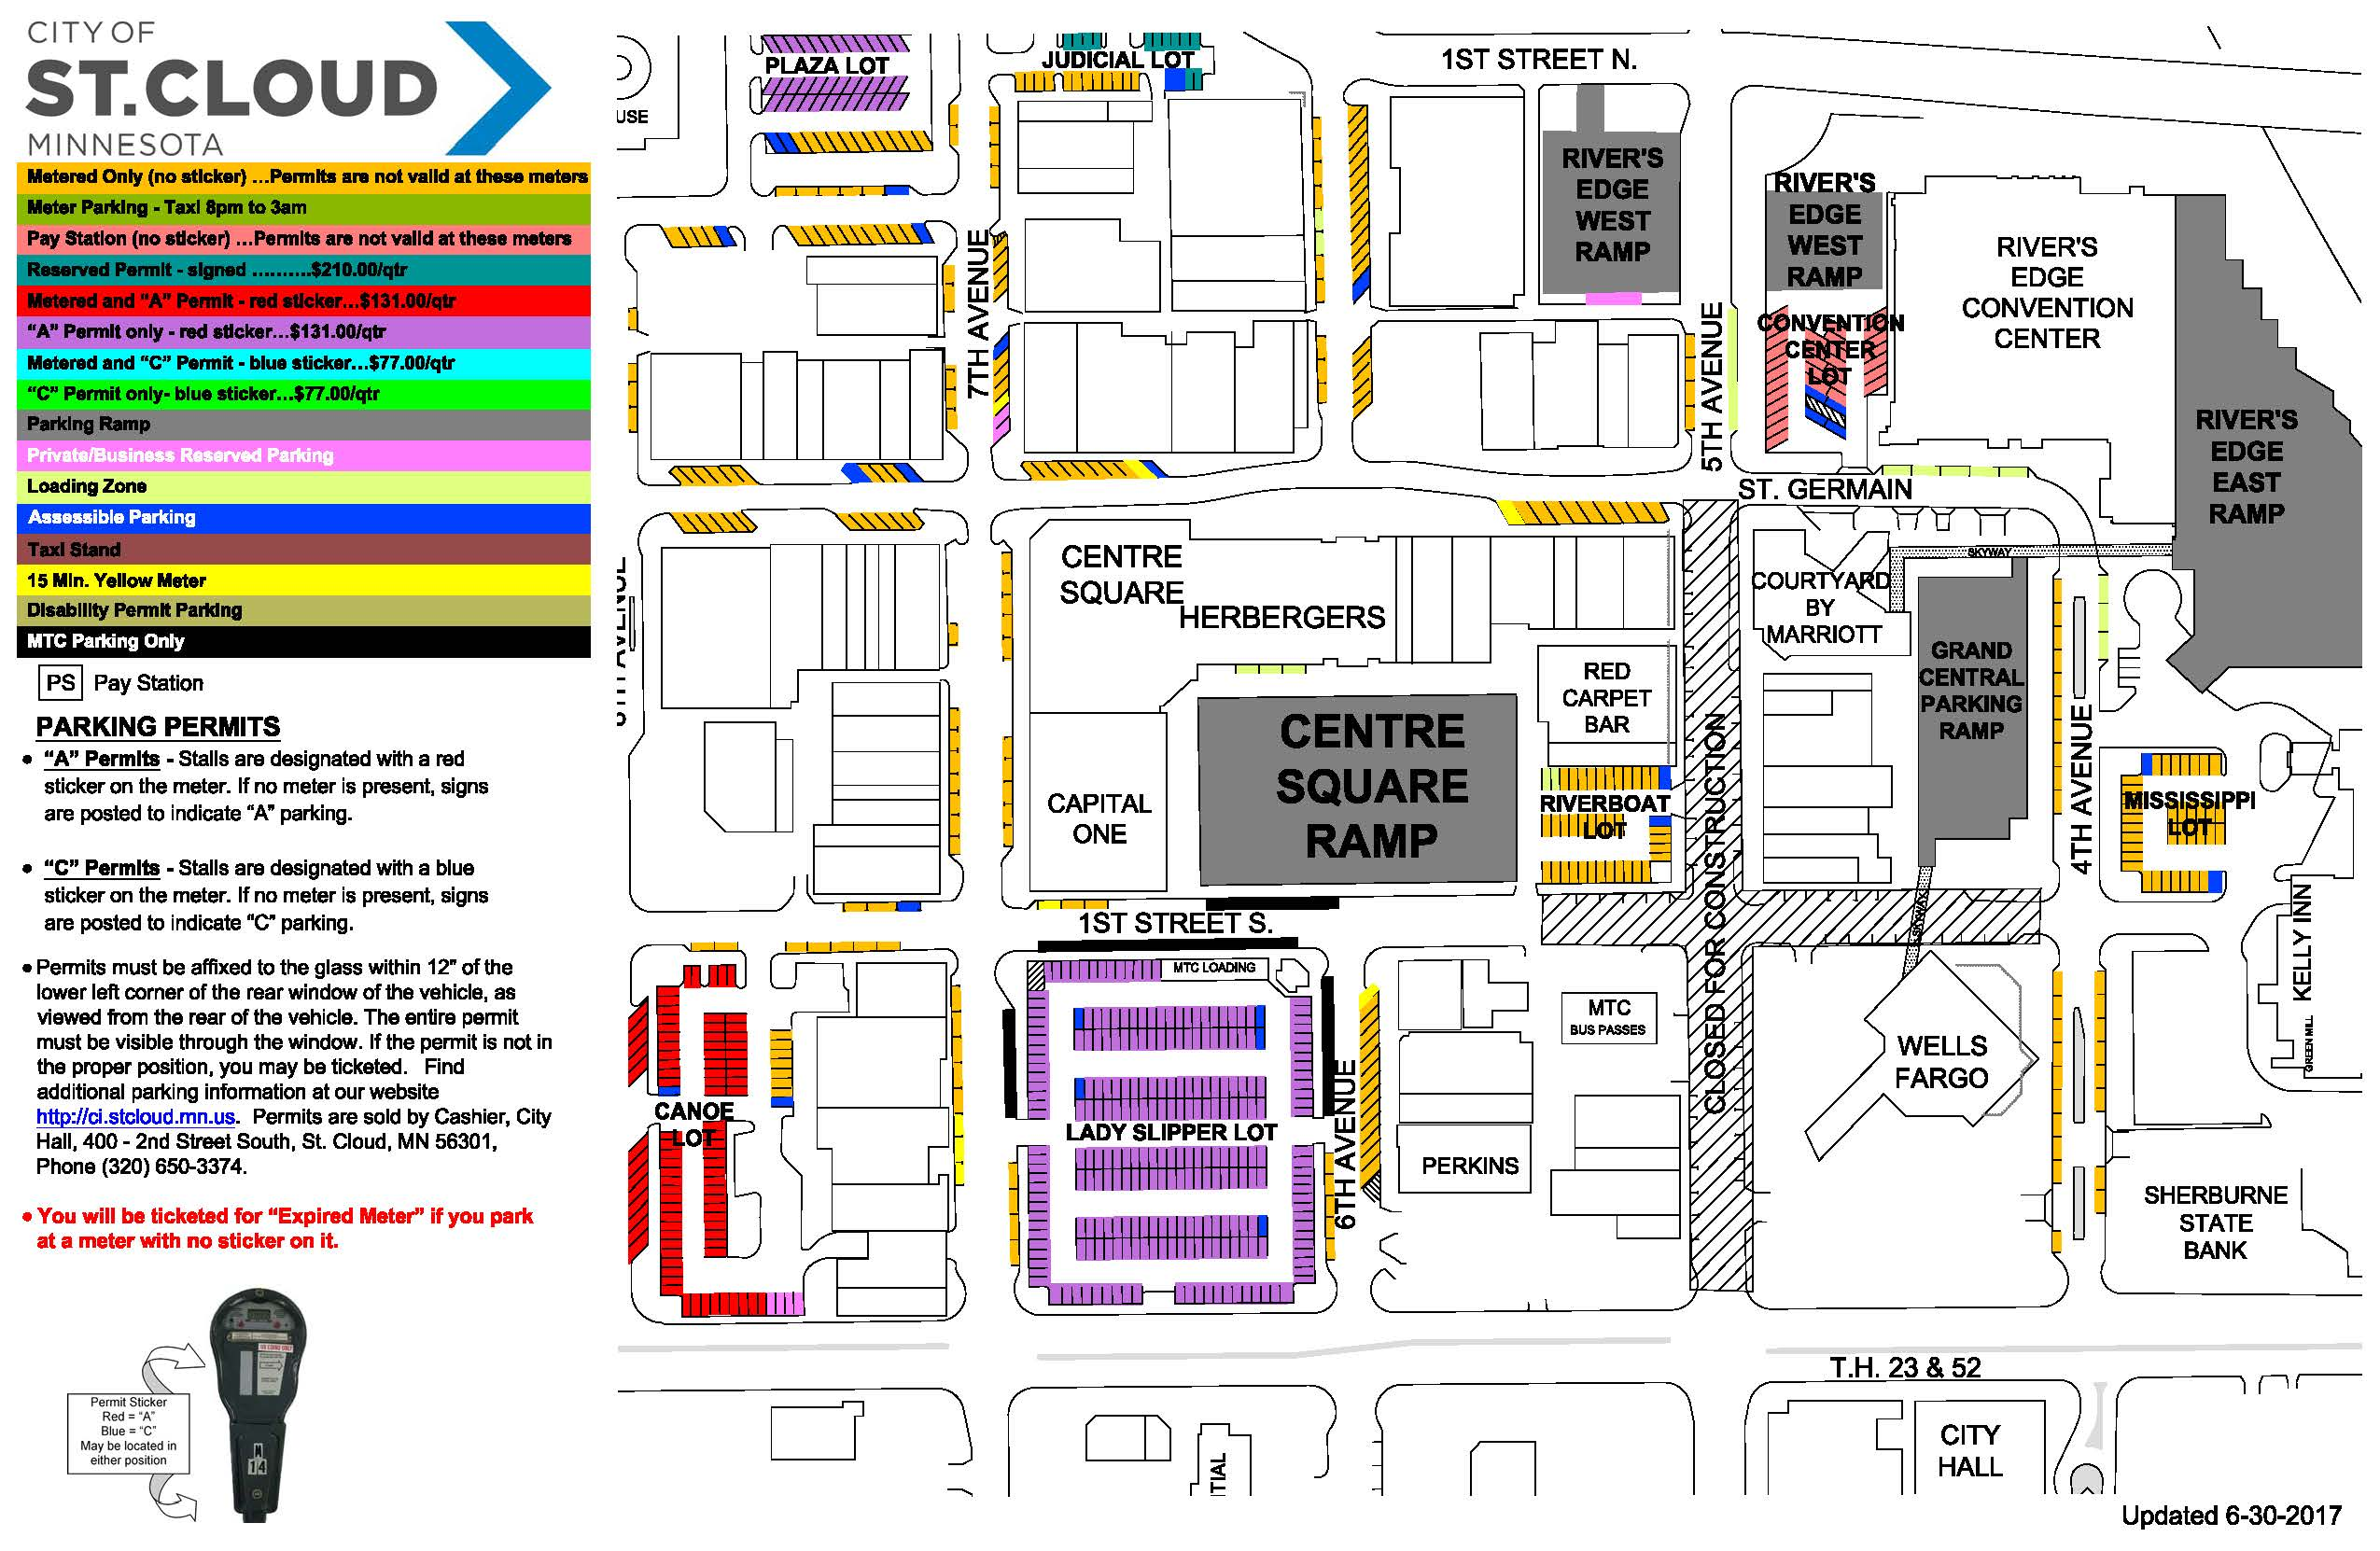 5th Ave Parking Construction Map